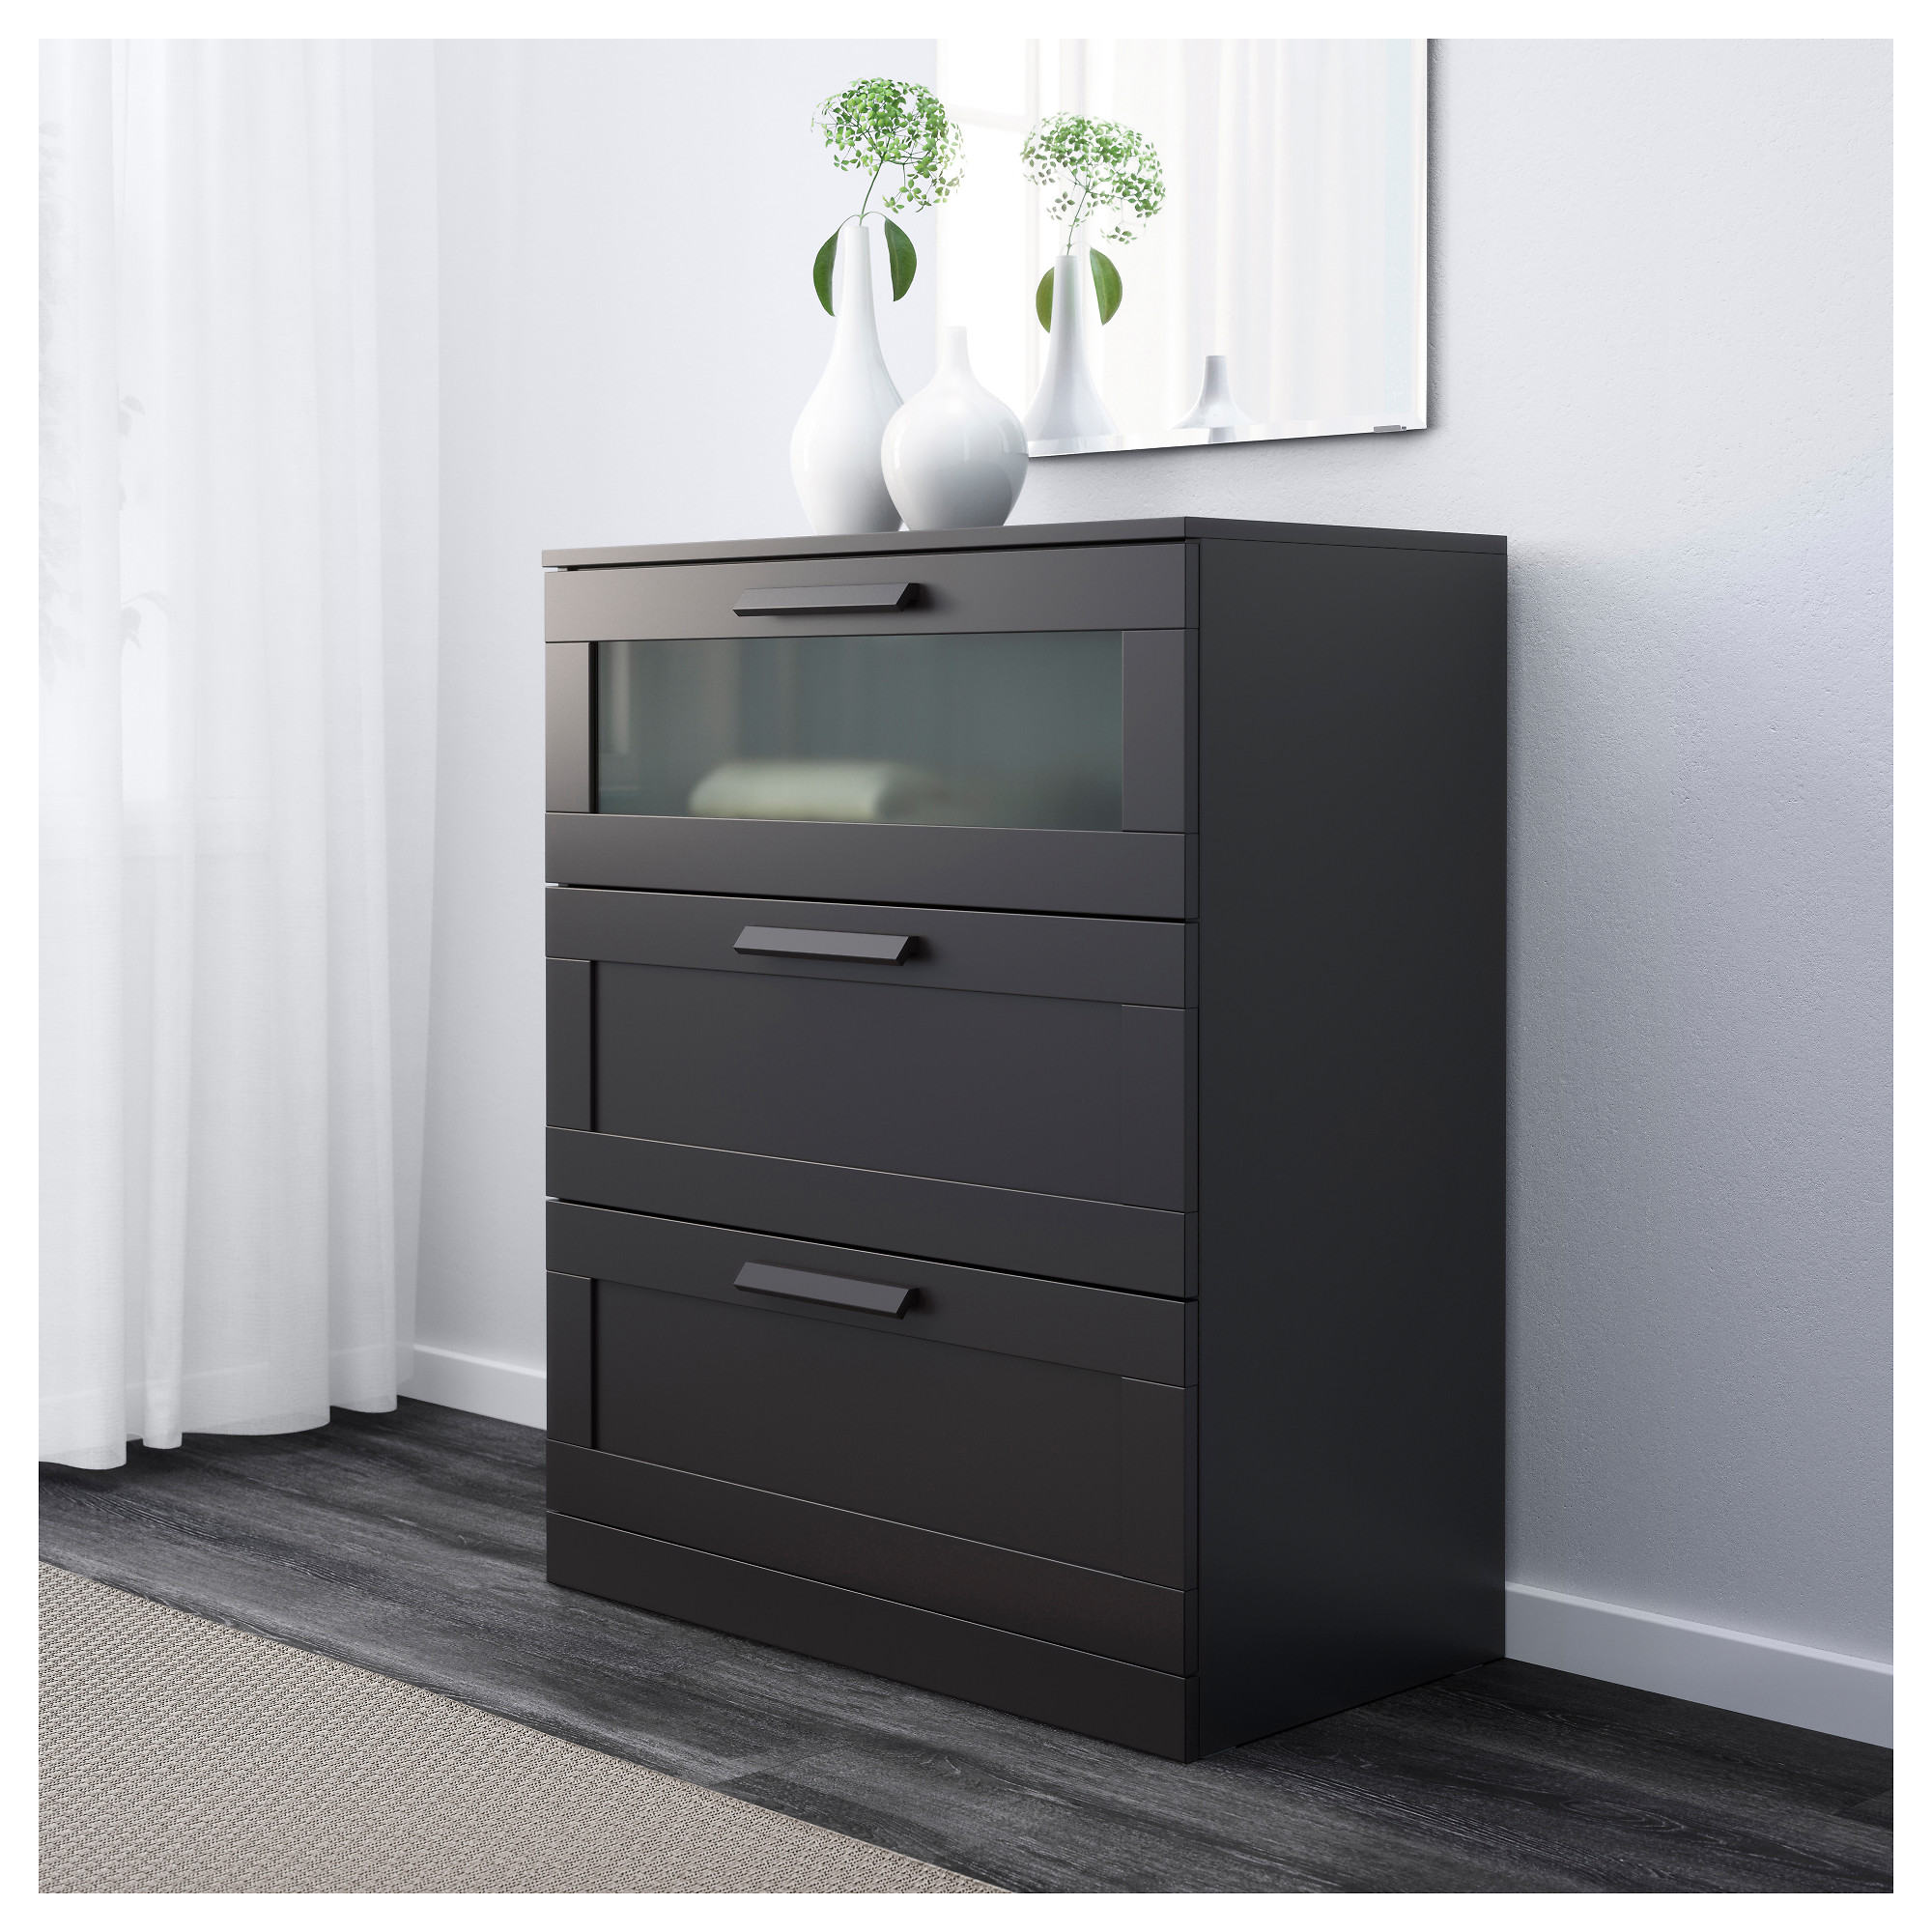 3 drawer dresser black